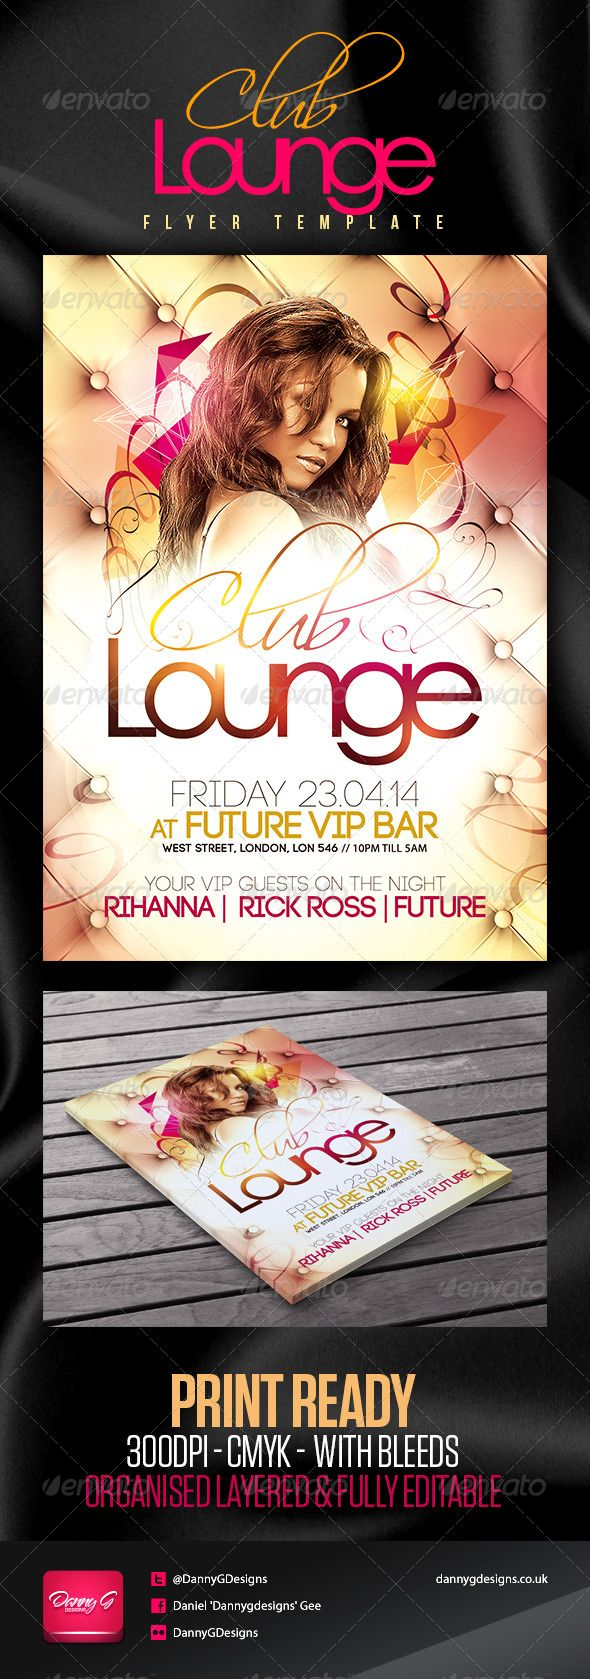 Club Lounge Flyer Template  Flyer Size Elegant Sophisticated And